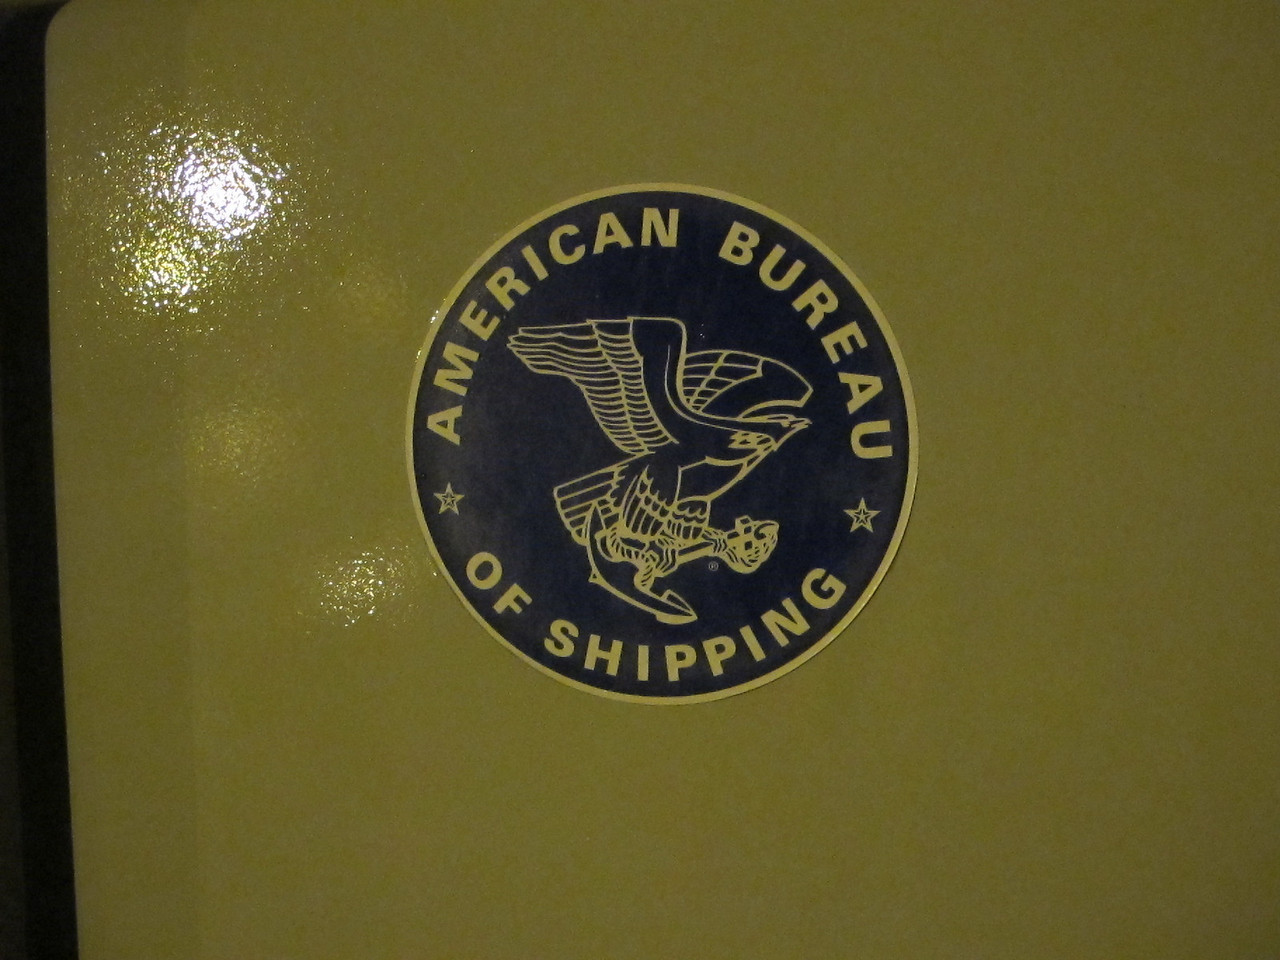 """The <a href=""http://en.wikipedia.org/wiki/American_Bureau_of_Shipping"">American Bureau of Shipping (ABS)</a> is a classification society, with a mission to promote the security of life, property and the natural environment, primarily through the development and verification of standards for the design, construction and operational maintenance of marine-related facilities. At the end of 2006, ABS was the third largest class society with a classed fleet of over 10,000 commercial vessels and offshore facilities. ABS' core service is the provision of classification services through the development of standards called ABS Rules. These Rules form the basis for assessing the design and construction of new vessels and the integrity of existing vessels and marine structures.""  Victoria, BC."